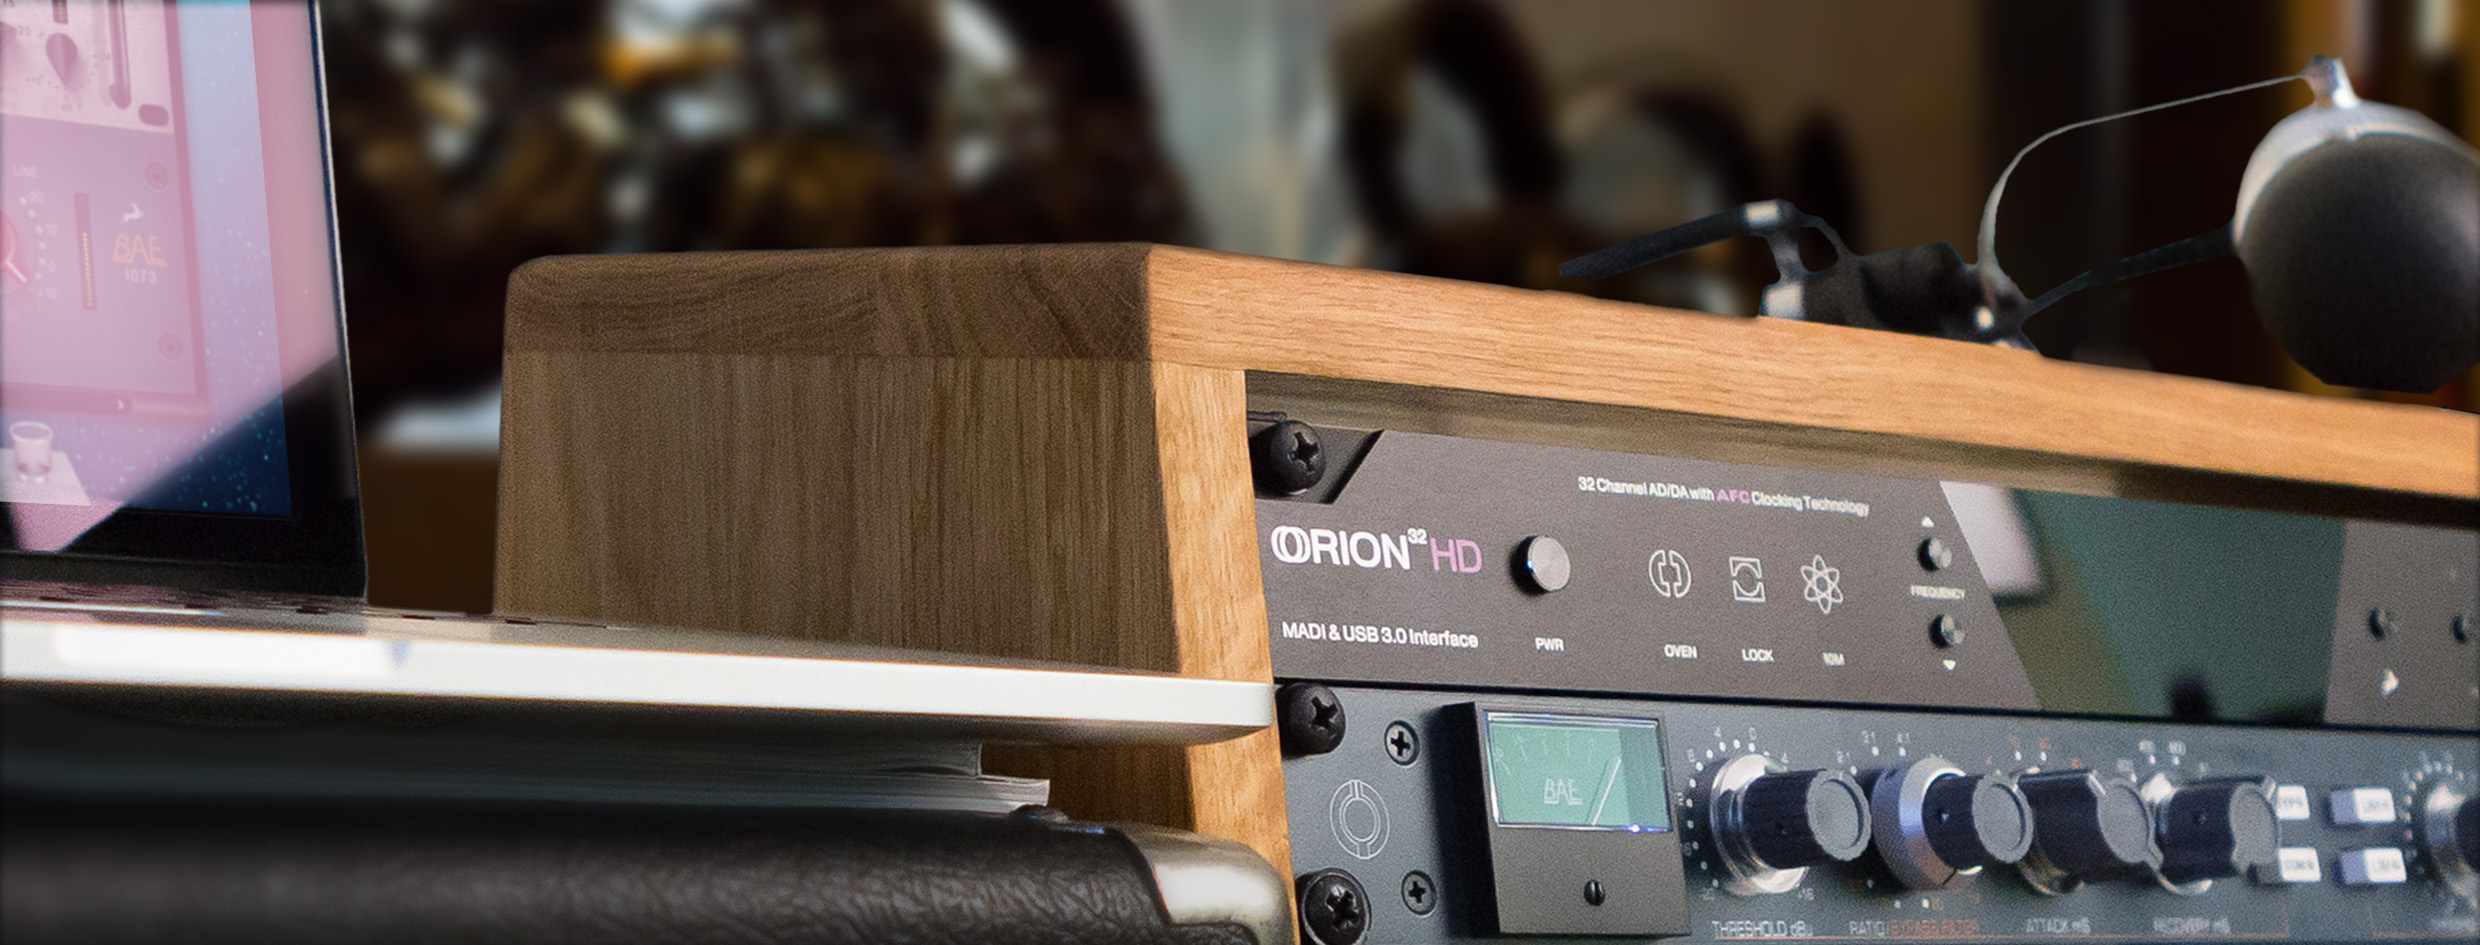 Orion32 HD won Music Players' Best of NAMM Award